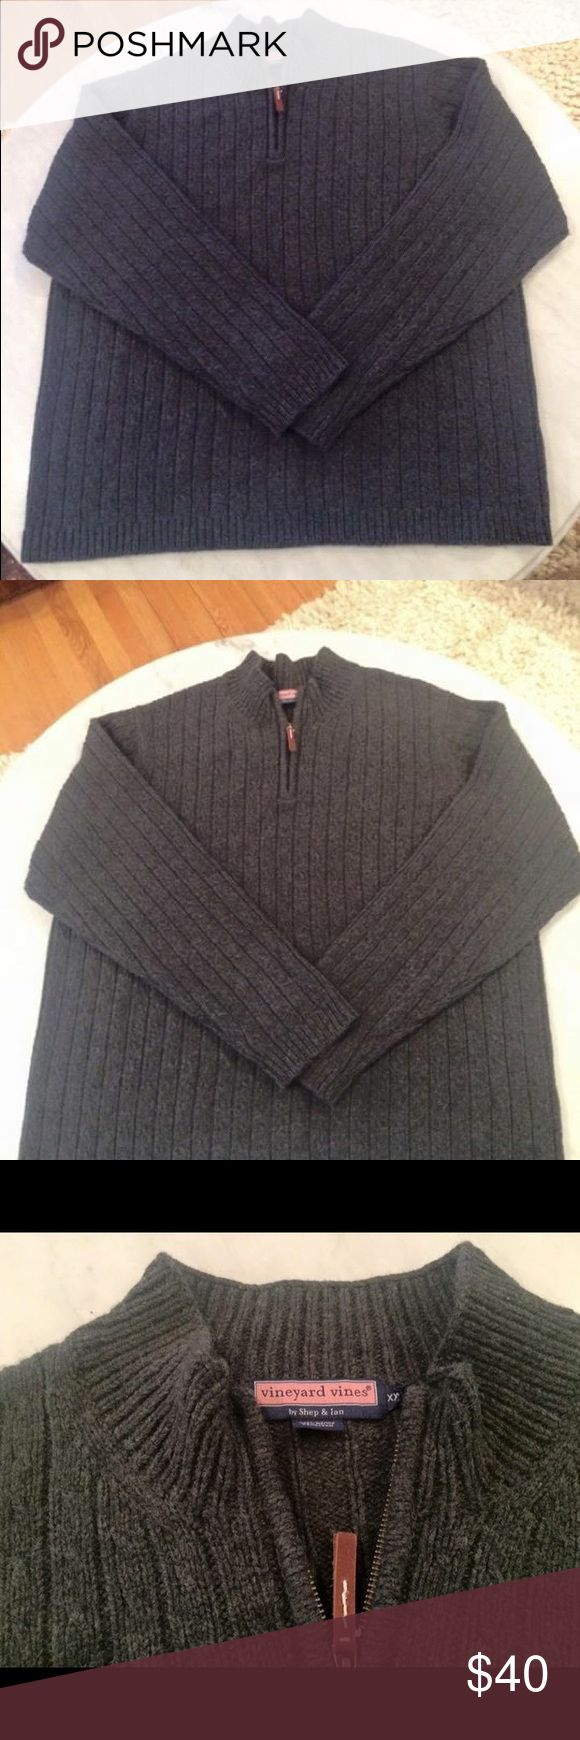 Vineyard Vines merino wool men's half zip Sweater Half zip charcoal gray 100% merino wool sweater by Vineyard Vines!!  Really great condition!! Size XXL Vineyard Vines Sweaters Zip Up